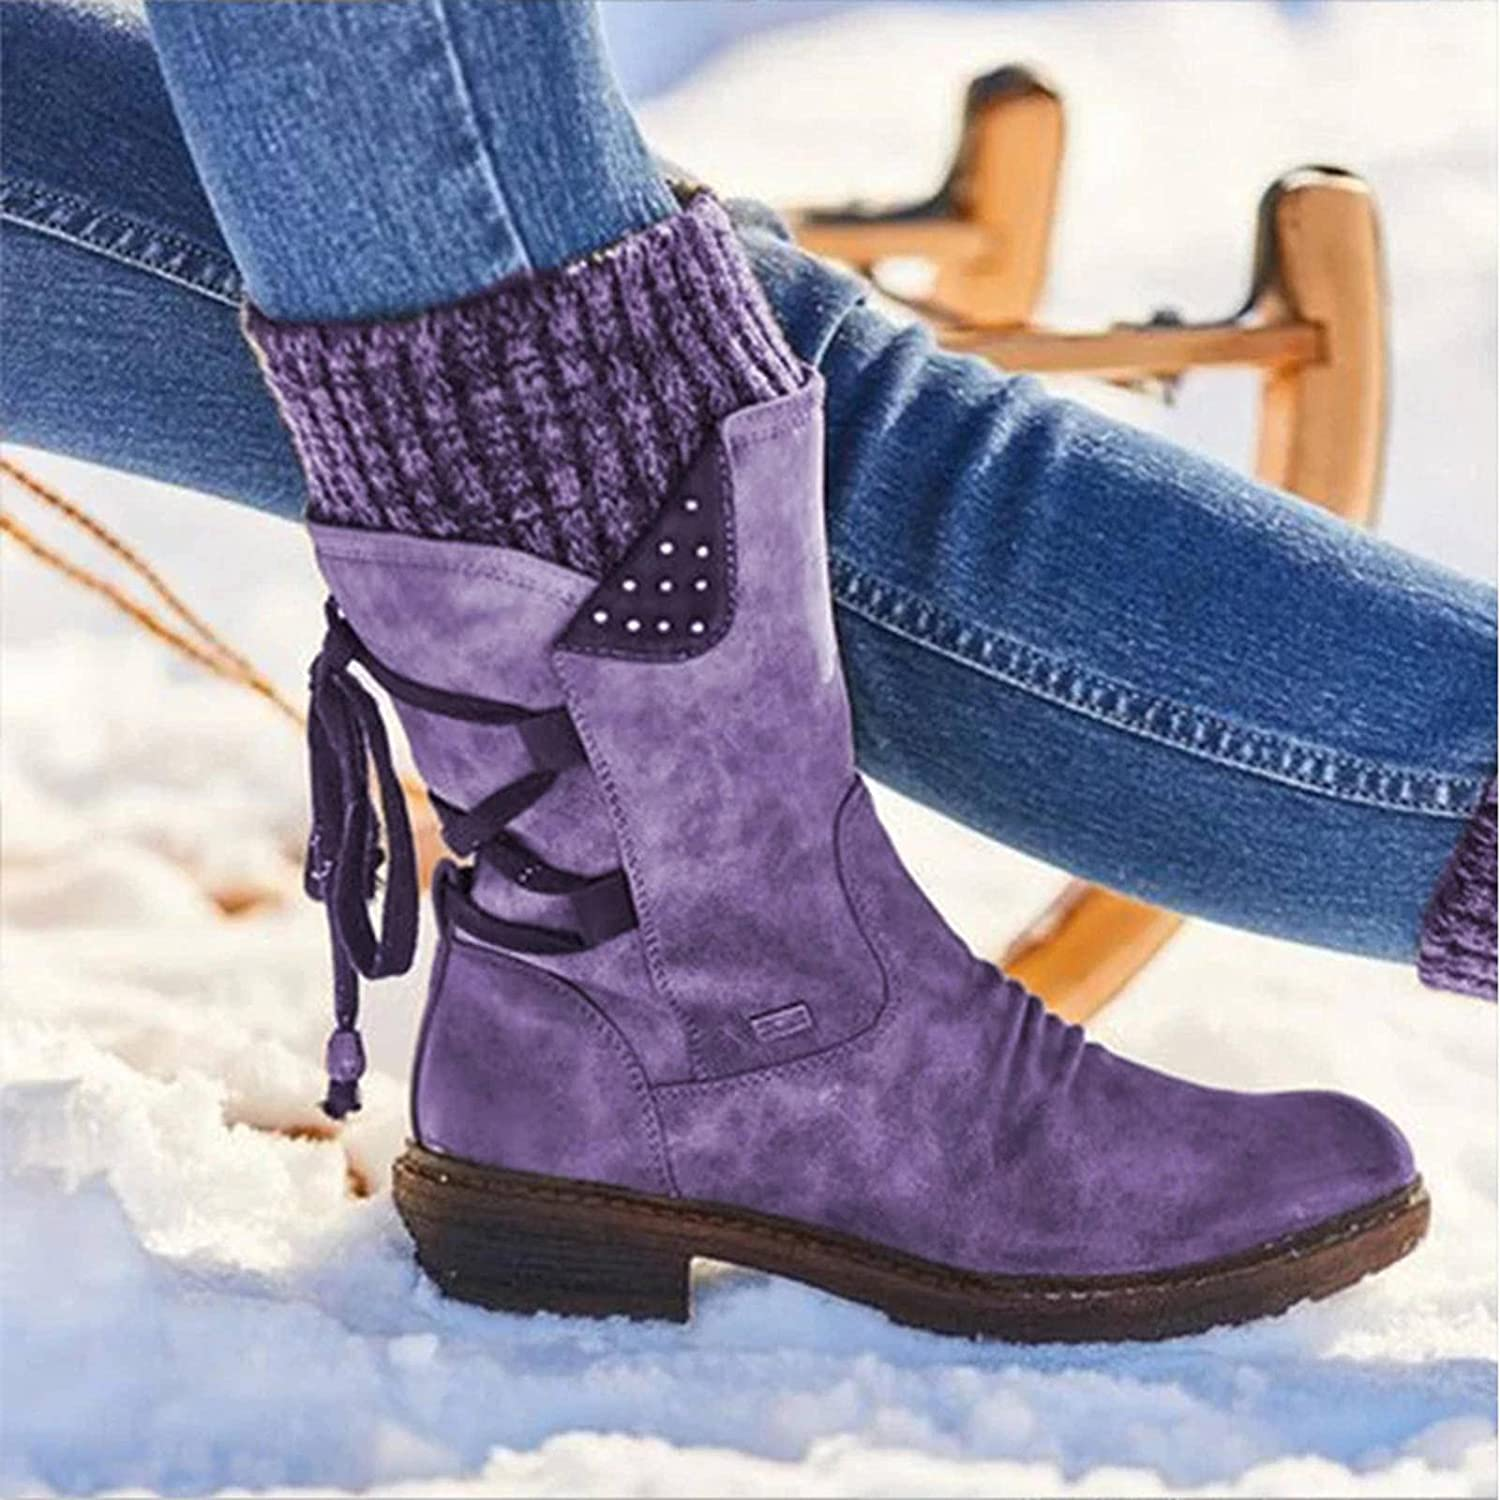 NC 2020 Women Winter Mid- Calf Boot Flock Winter Shoes Ladies Fashion Snow Boots Shoes Thigh High Suede Warm Boots